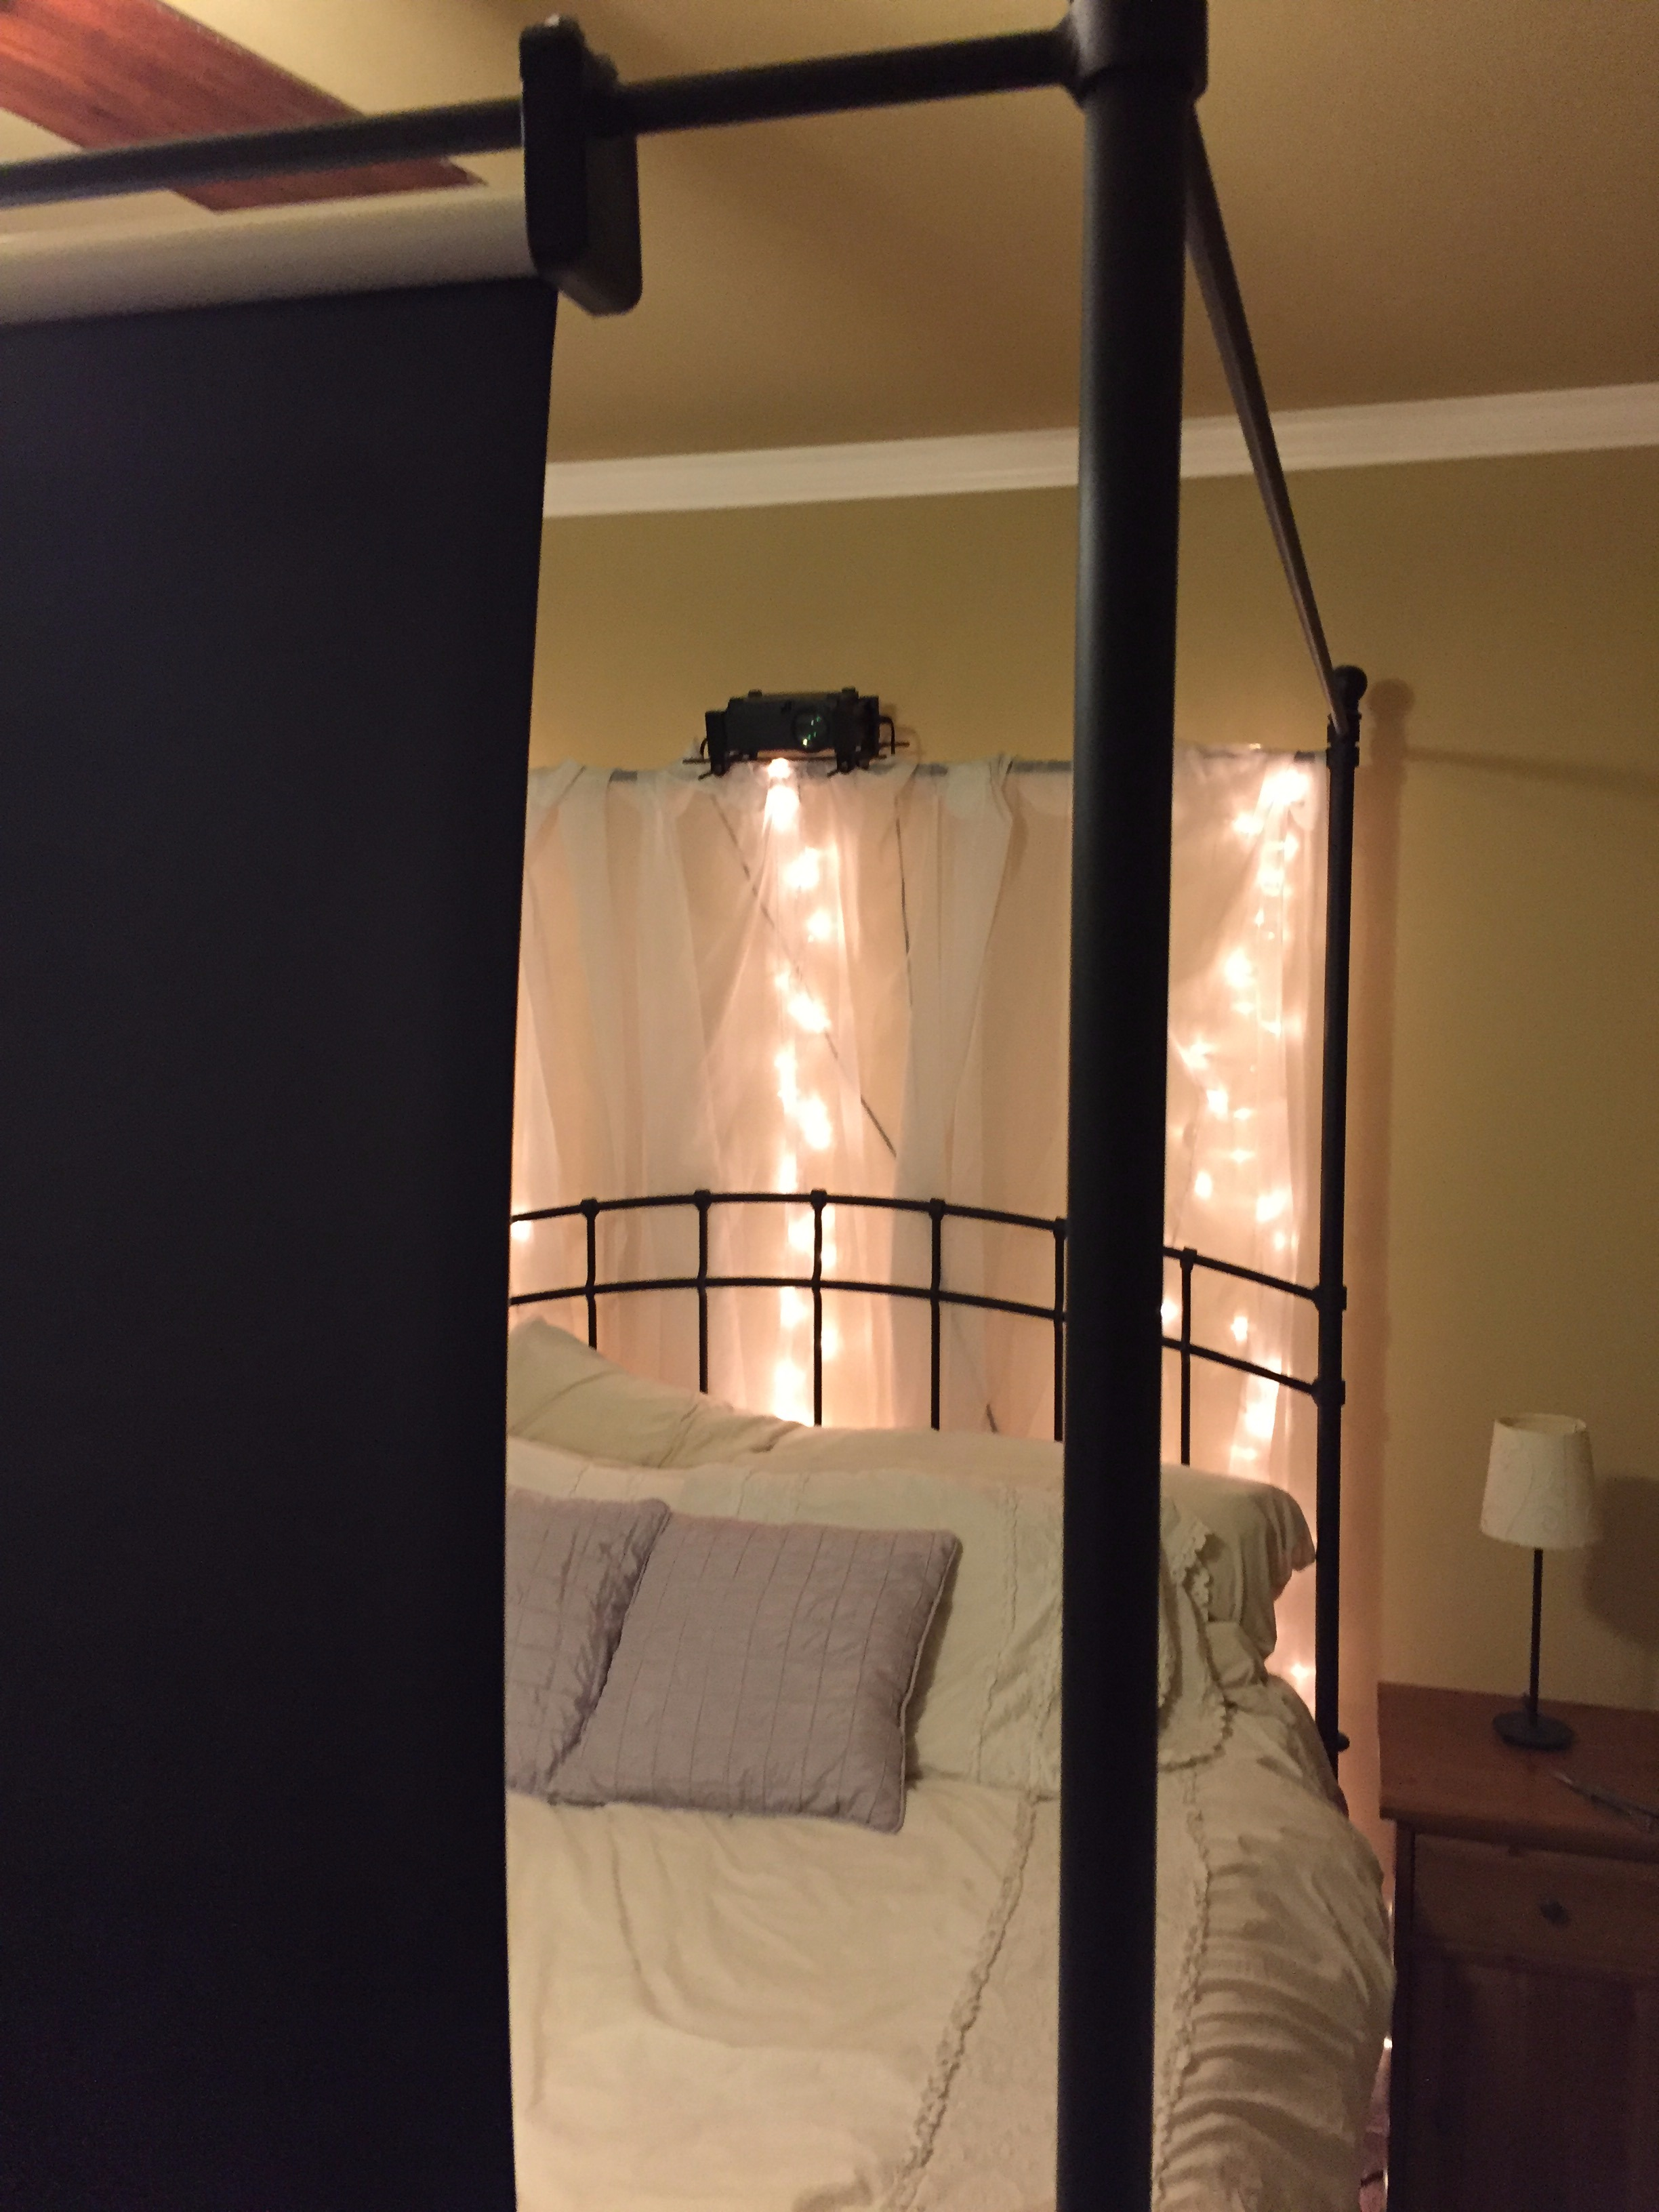 Picture of Mount It and Enjoy Your Home (Bed) Theater